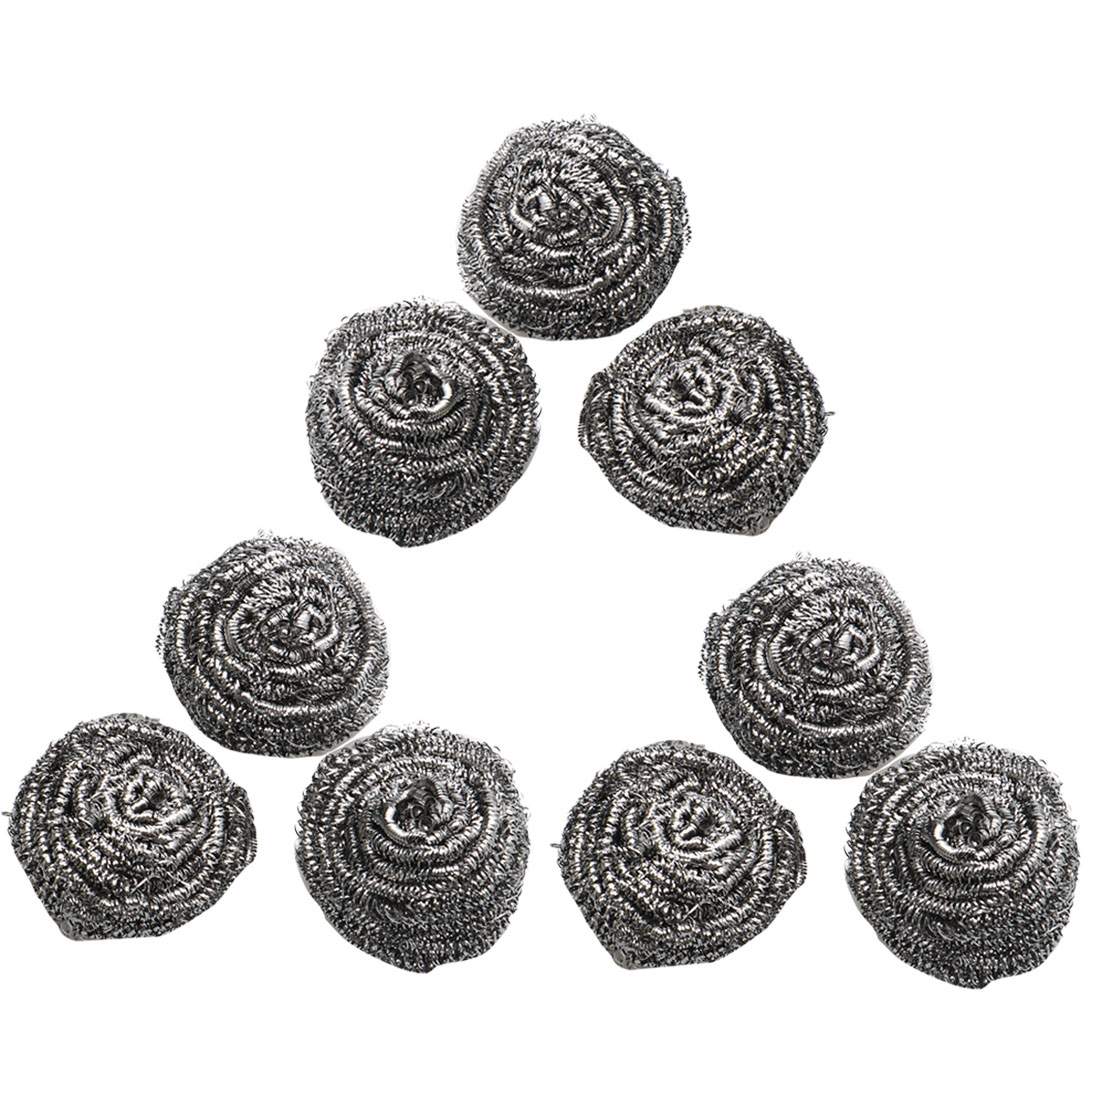 9 Pcs Silver Tone Stainless Steel Wire Kitchen Dishes Pots Pans Scrubber Scourer